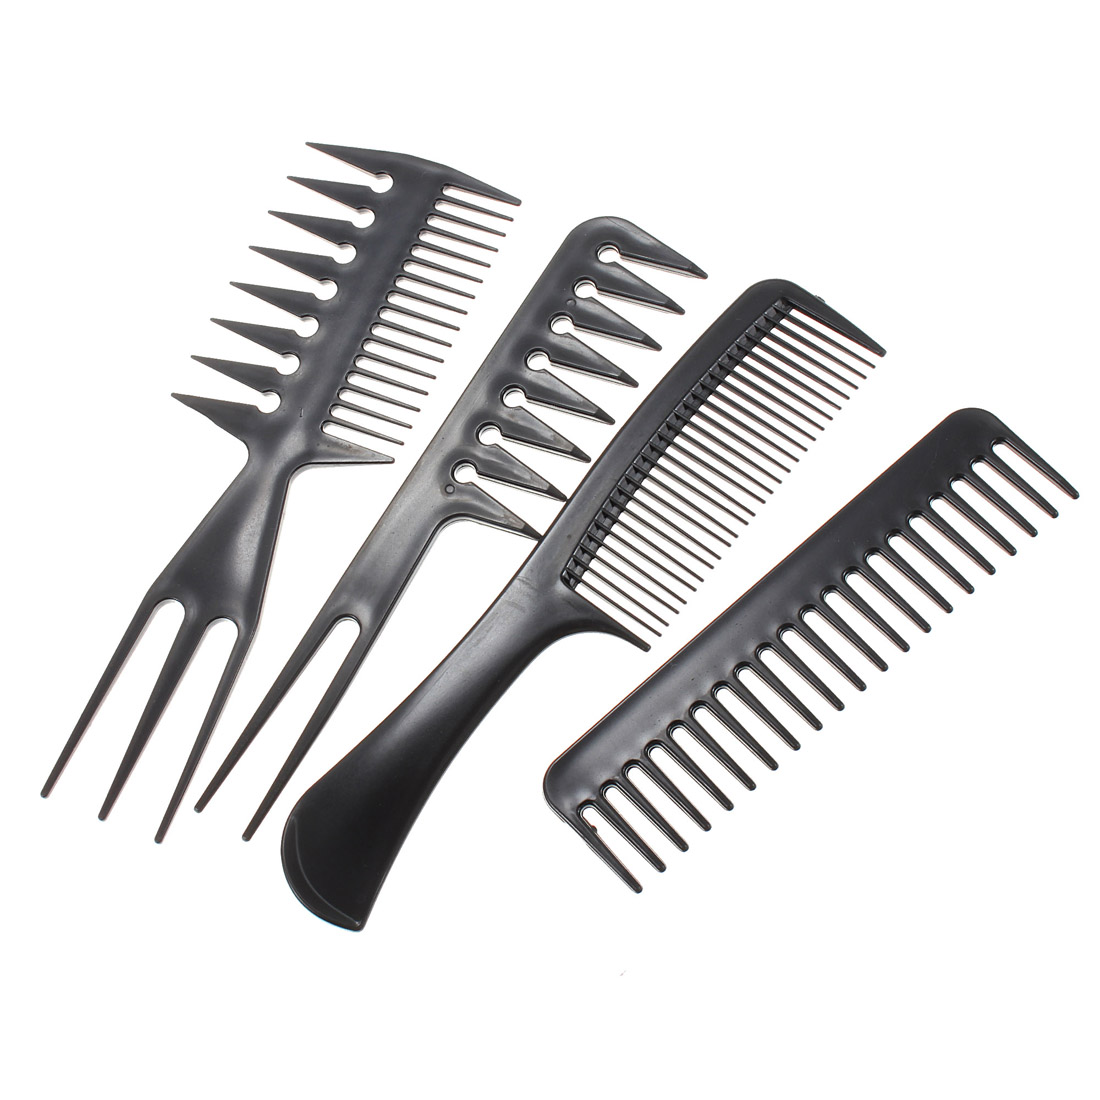 hair styling combs professional salon hair styling hairdressing plastic combs 7677 | 20120916133636593